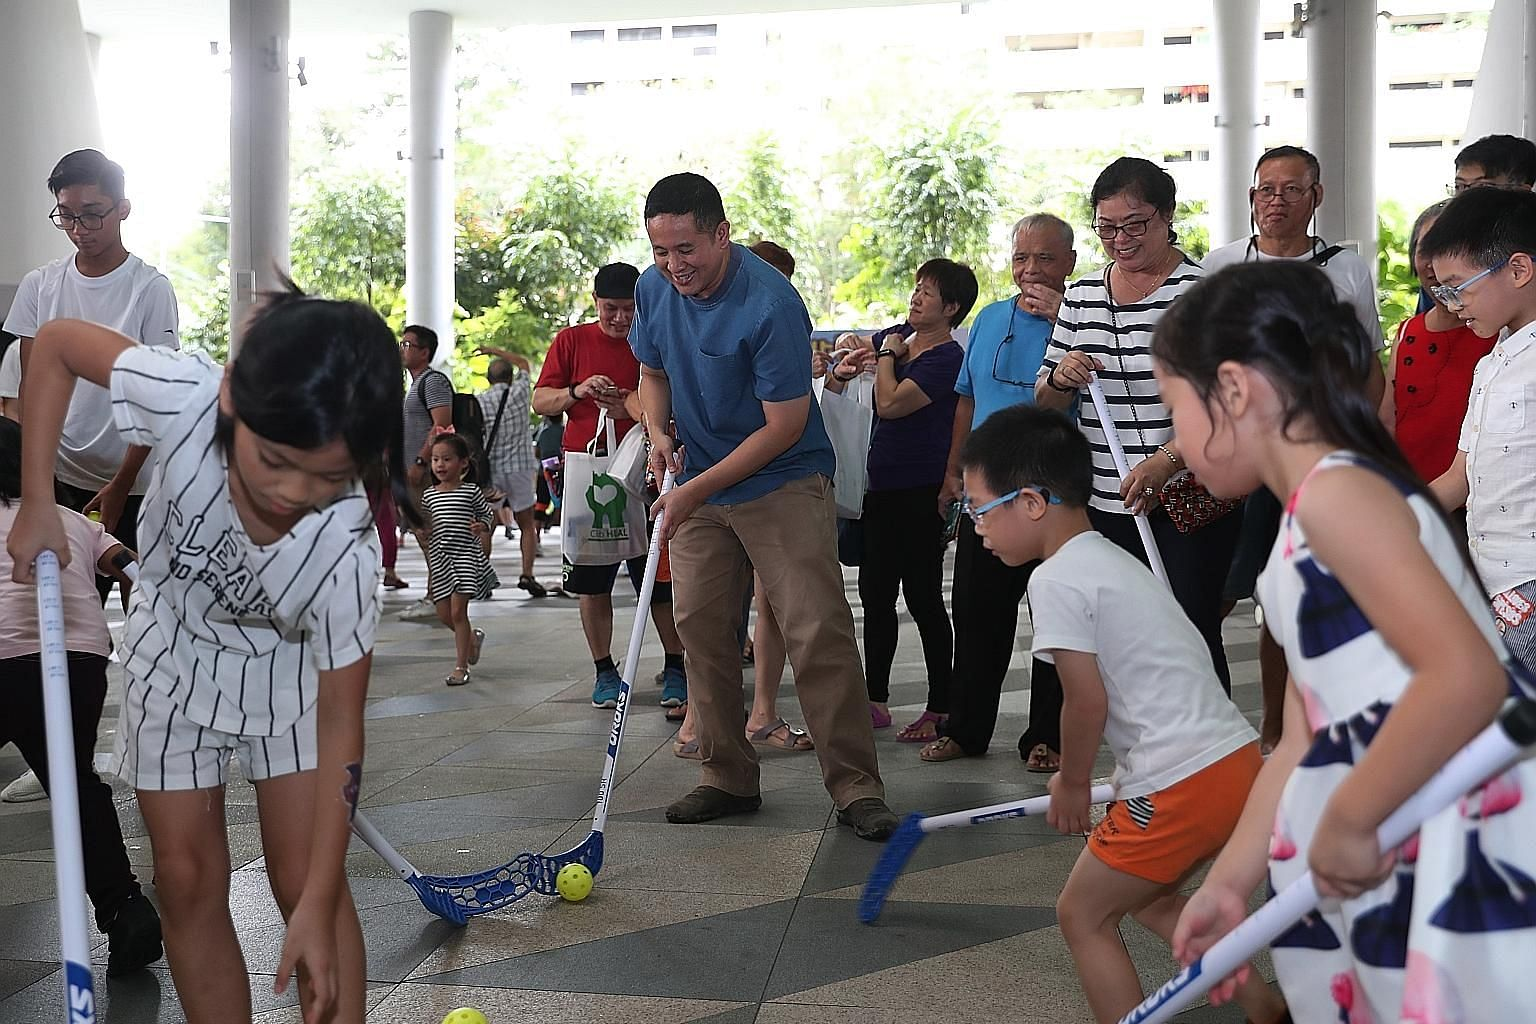 Senior Parliamentary Secretary for Health and Home Affairs Amrin Amin playing floorball with children at the Family Health and Wellness Carnival yesterday.